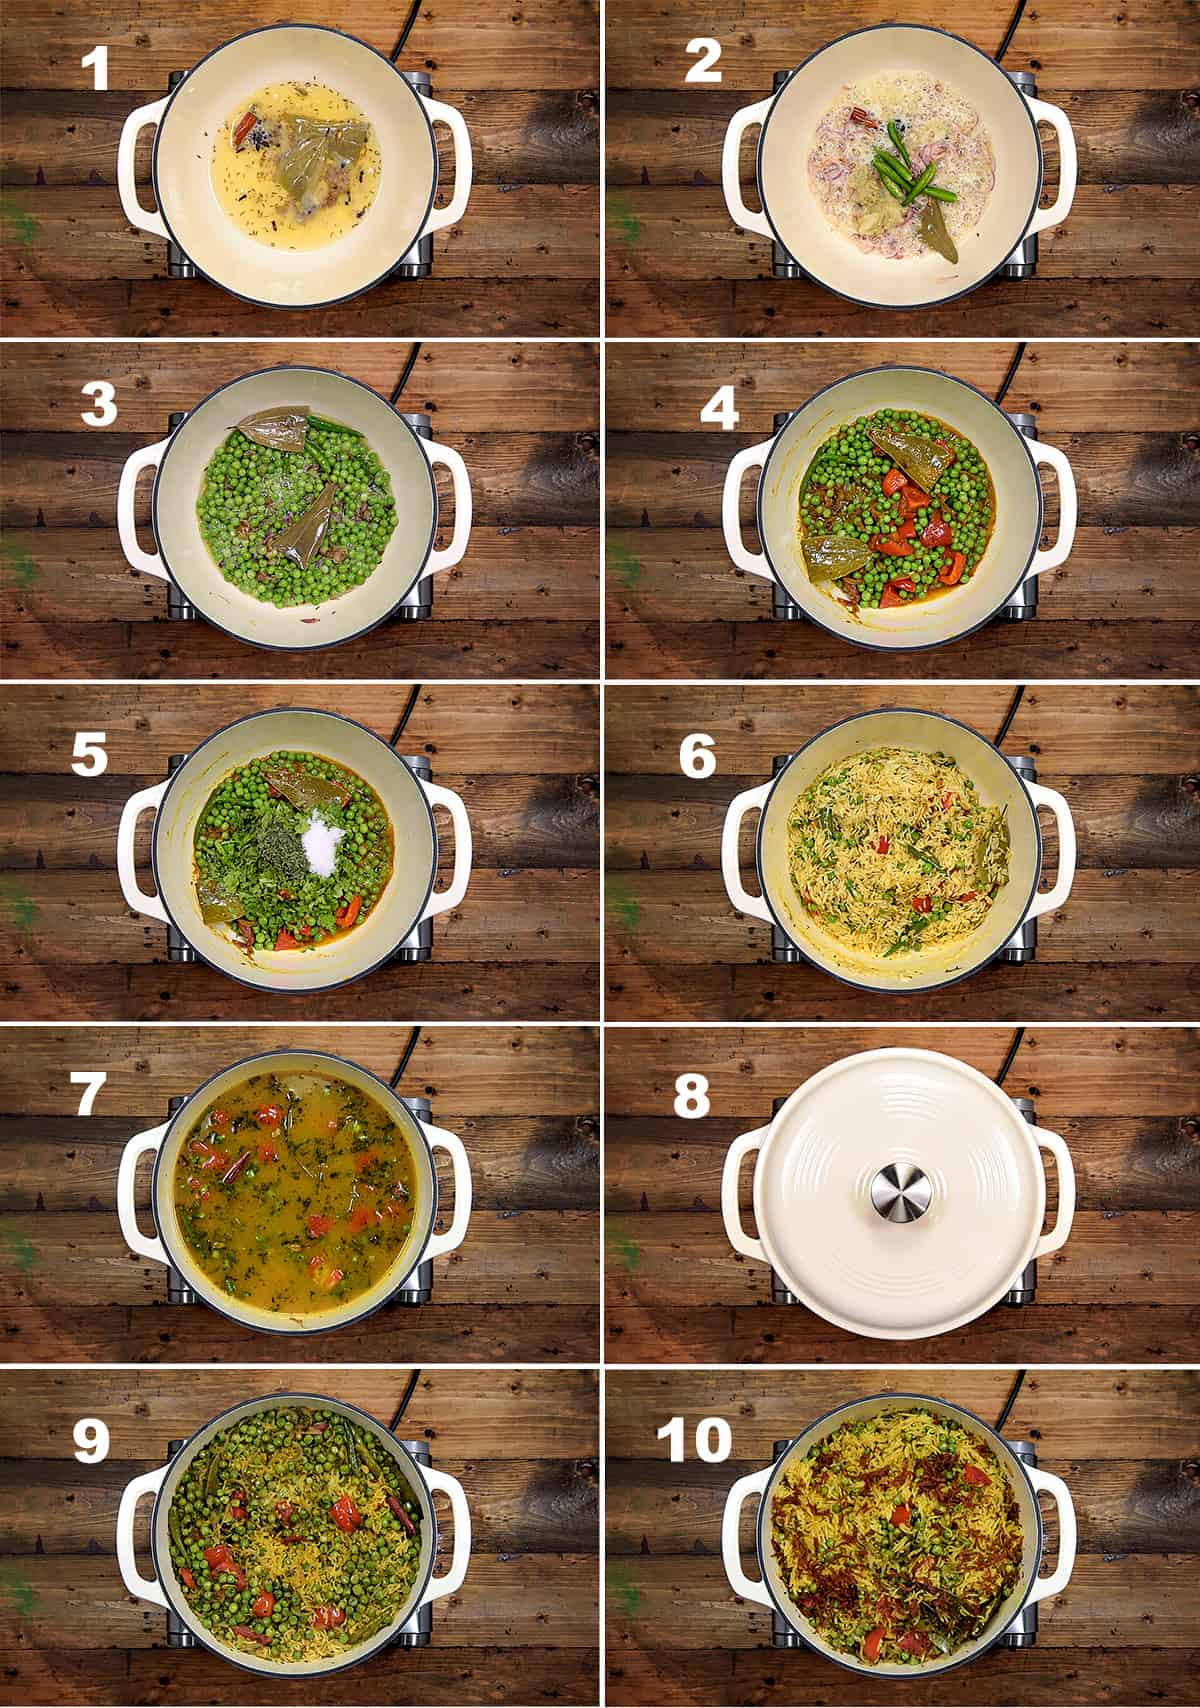 Step by Step picture collage showing how to make matar pulao in pot on stove top.